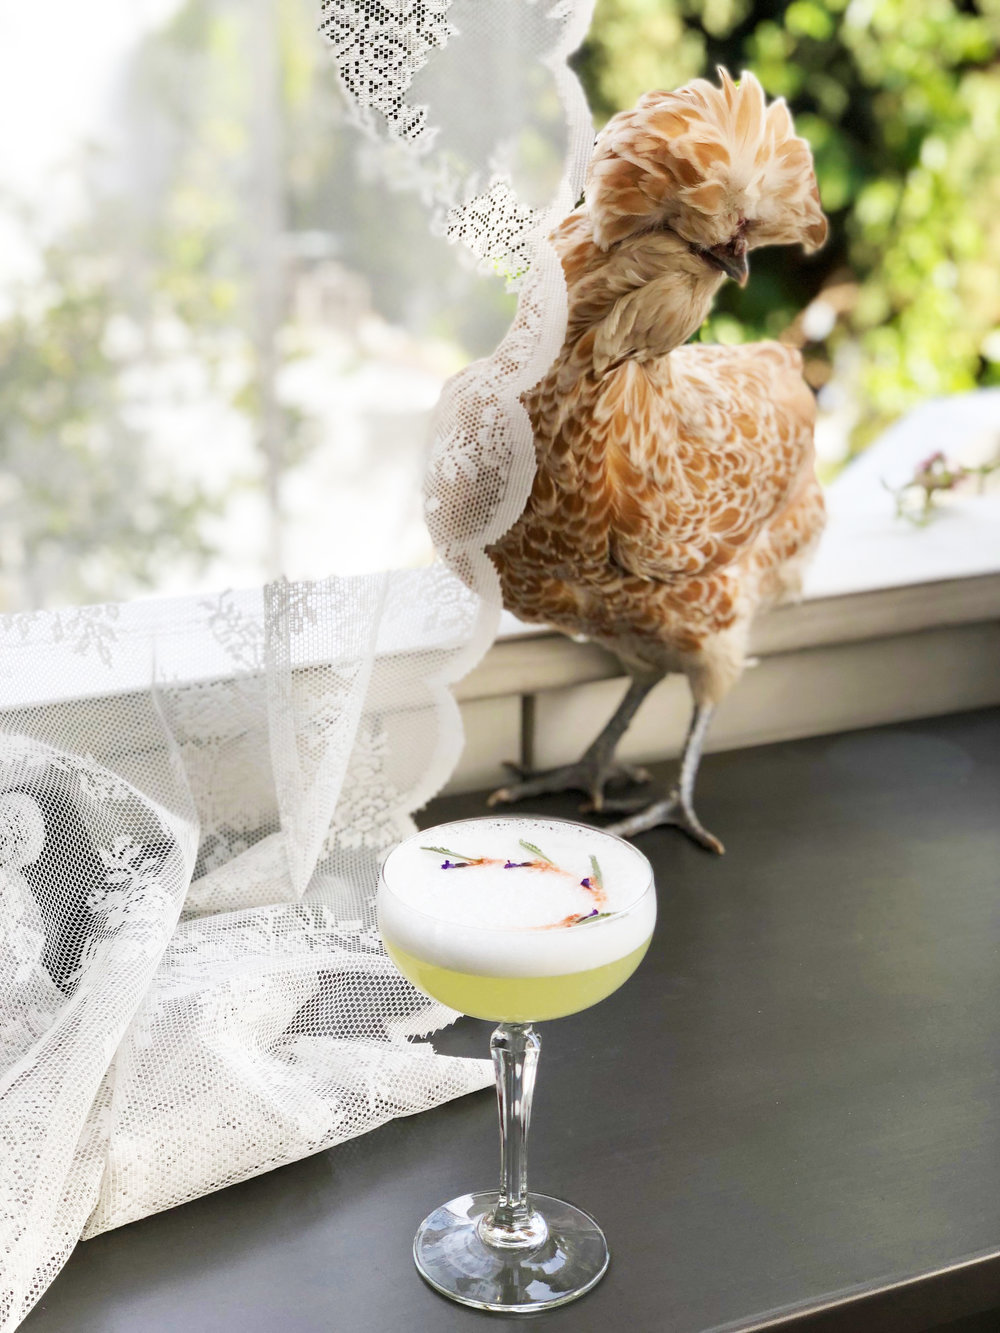 Lavender Pisco Sour | drinkingwithchickens.com